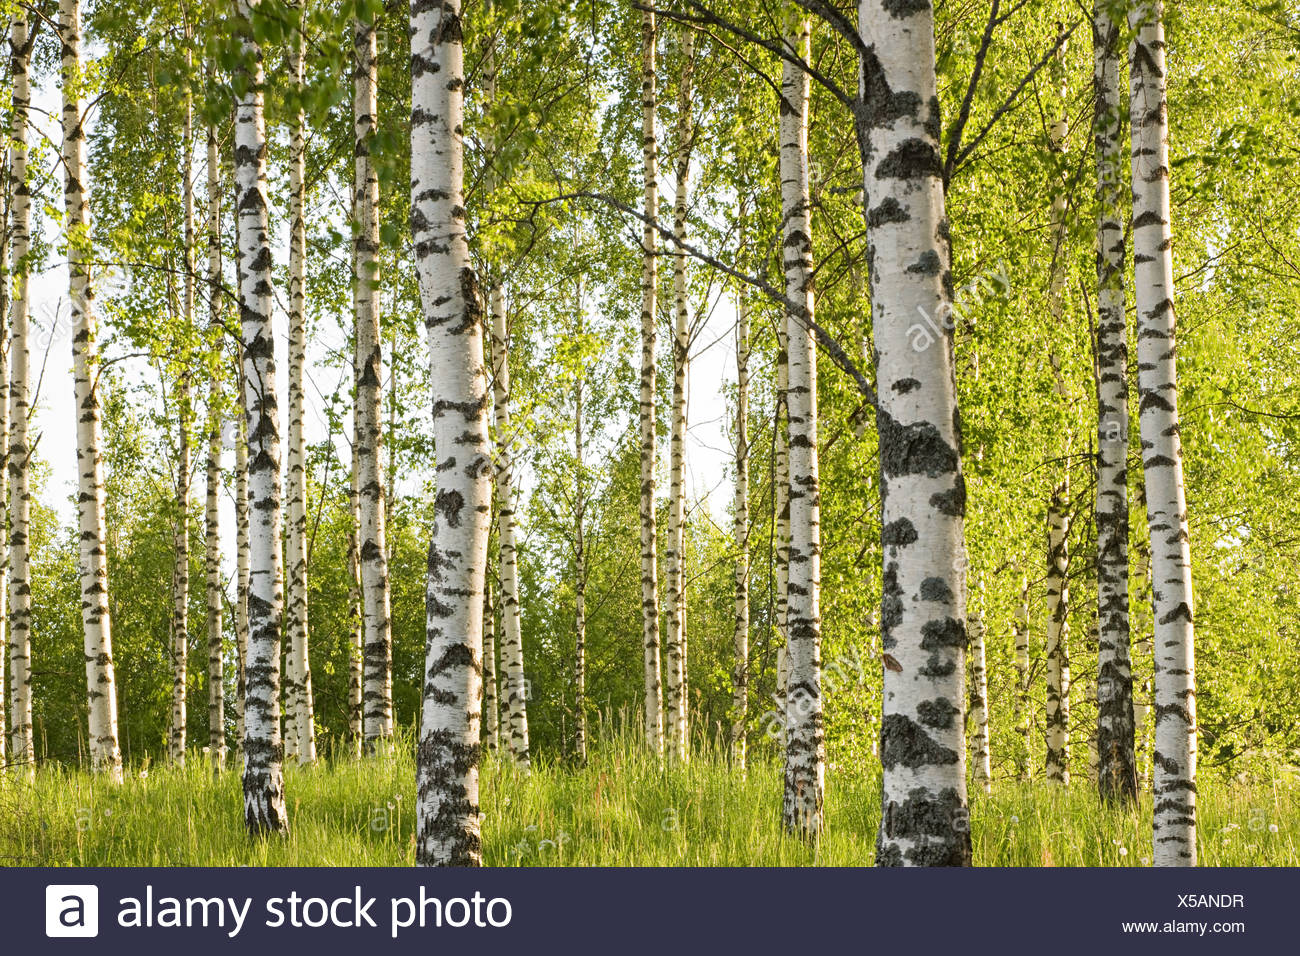 Forest of birch trees - Stock Image